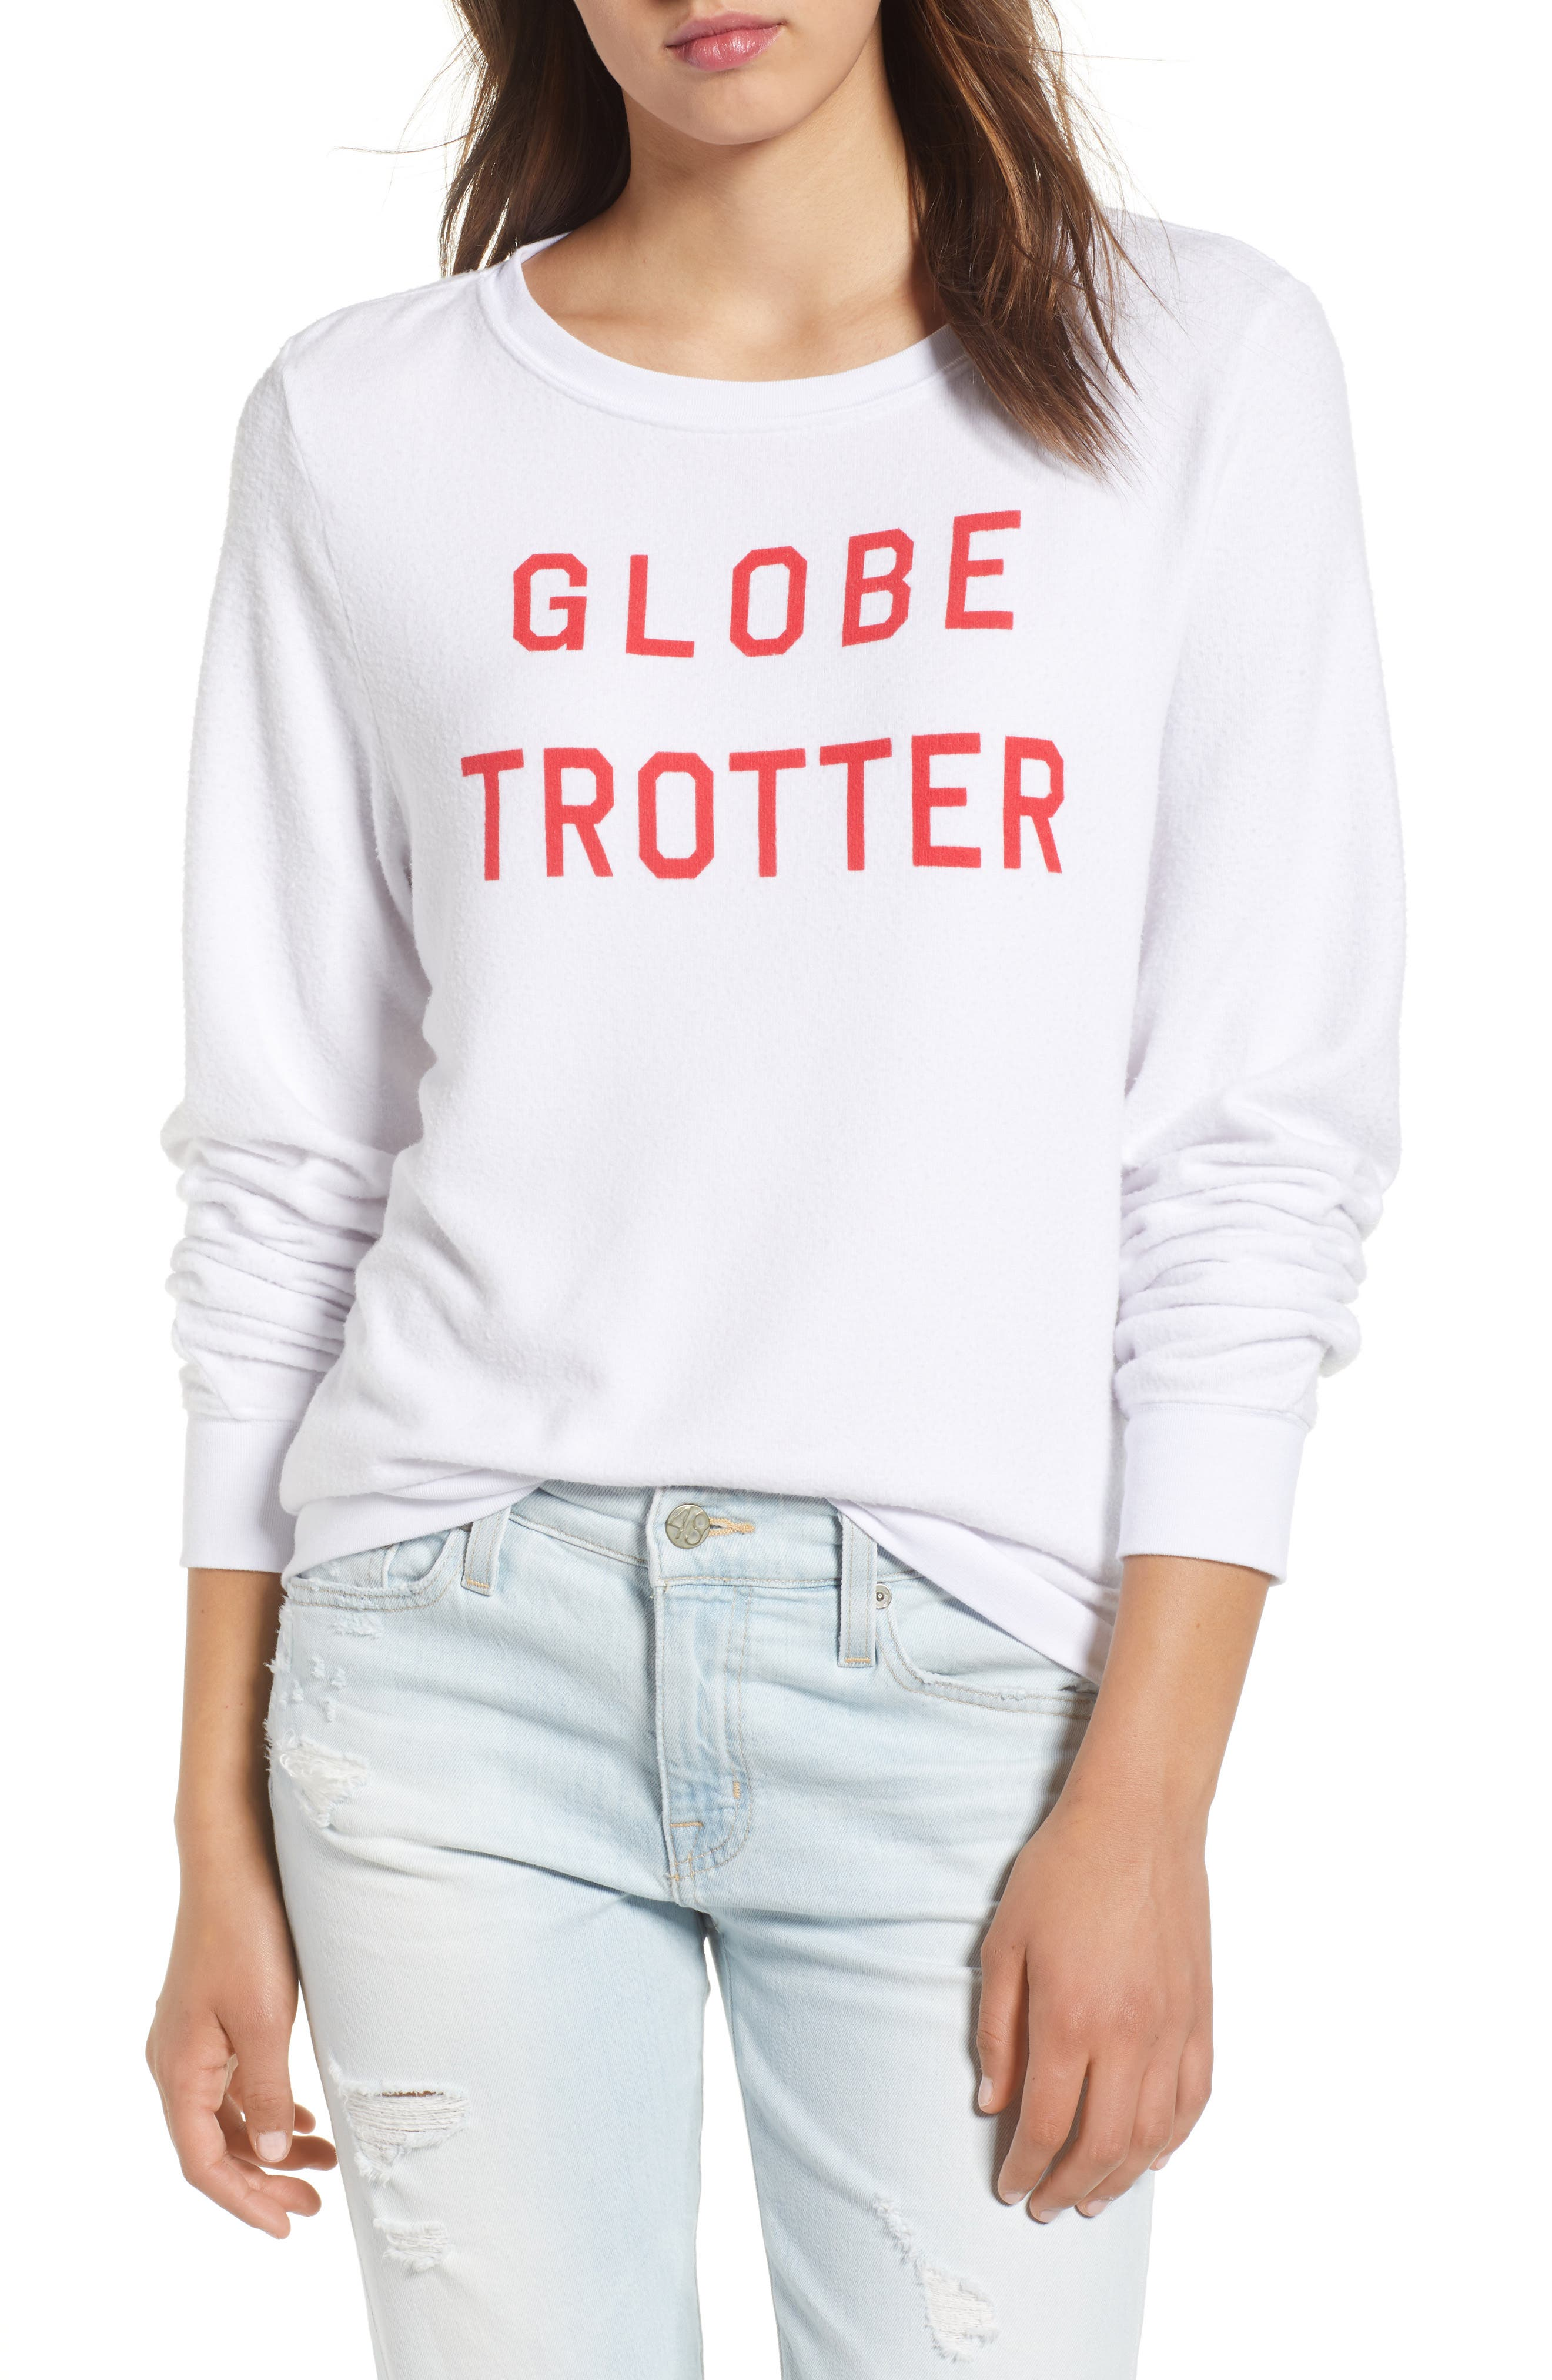 Globetrotter Baggy Beach Pullover,                             Main thumbnail 1, color,                             100